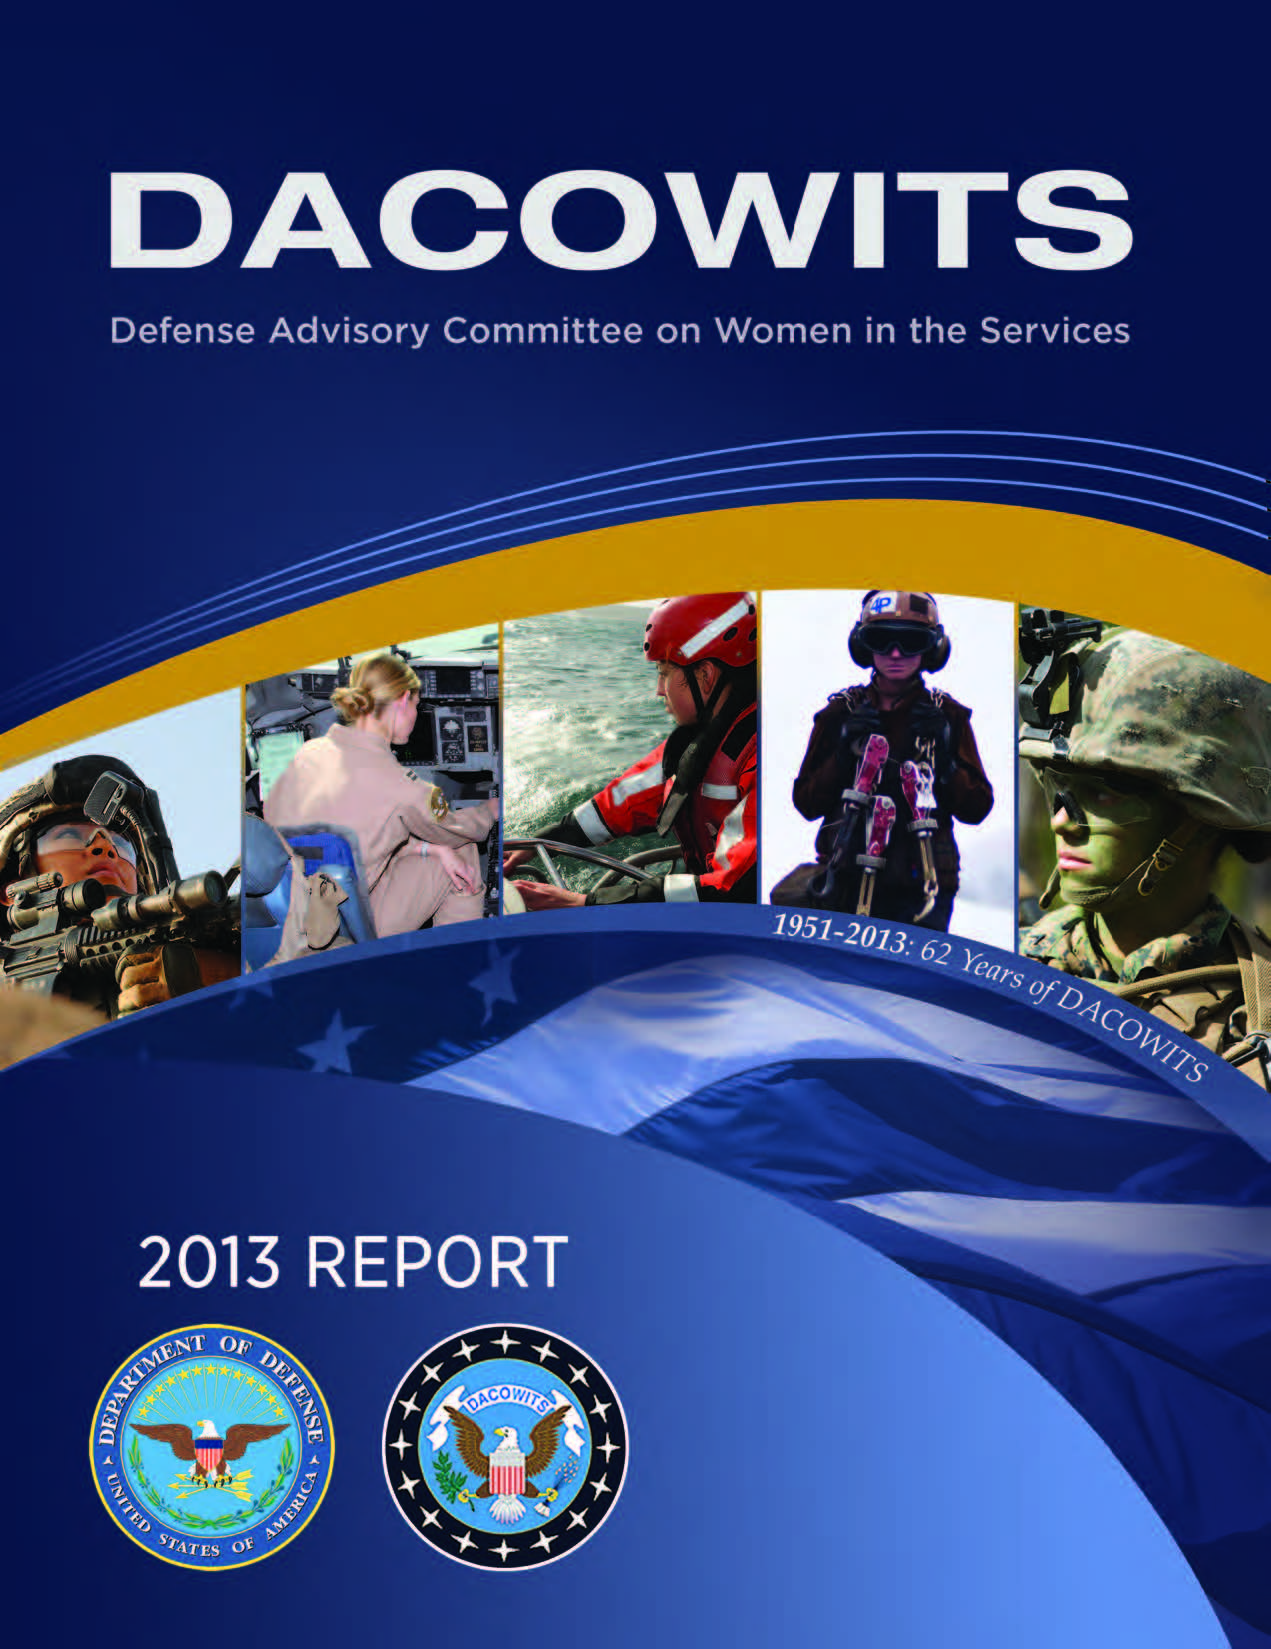 Dacowits 2013 Report